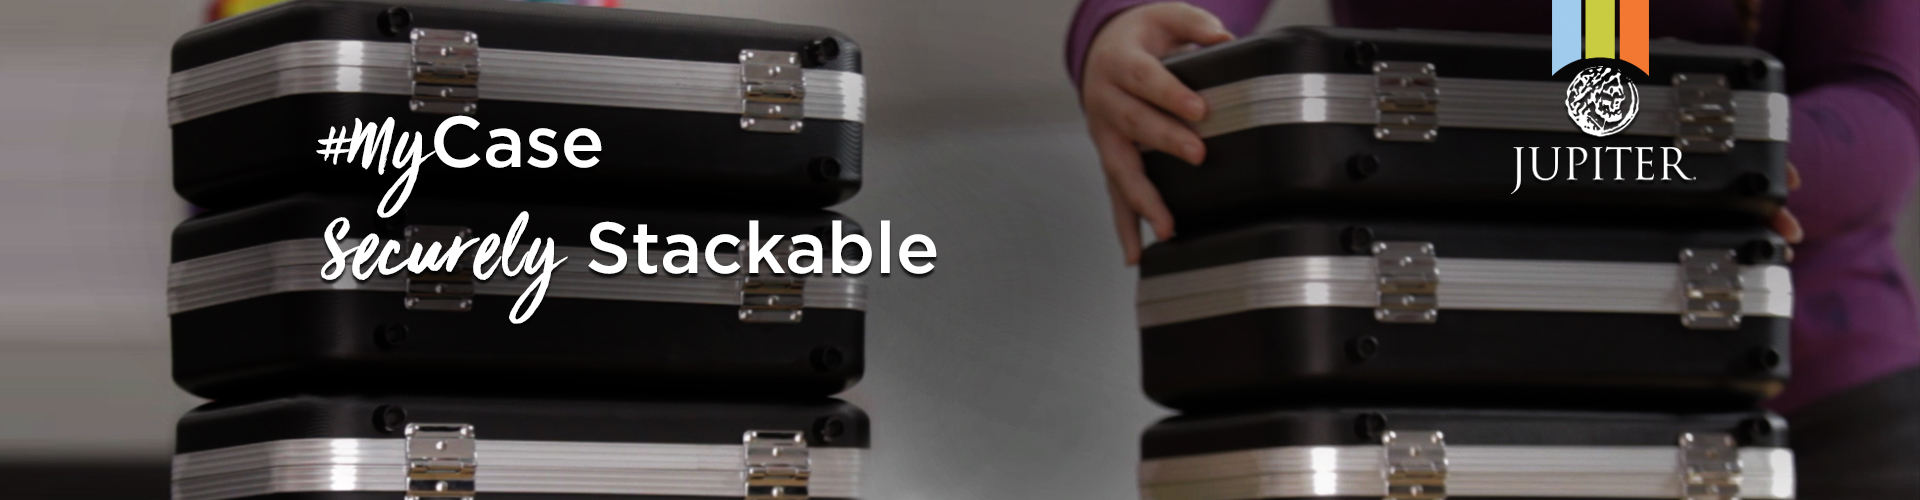 Securely Stackable